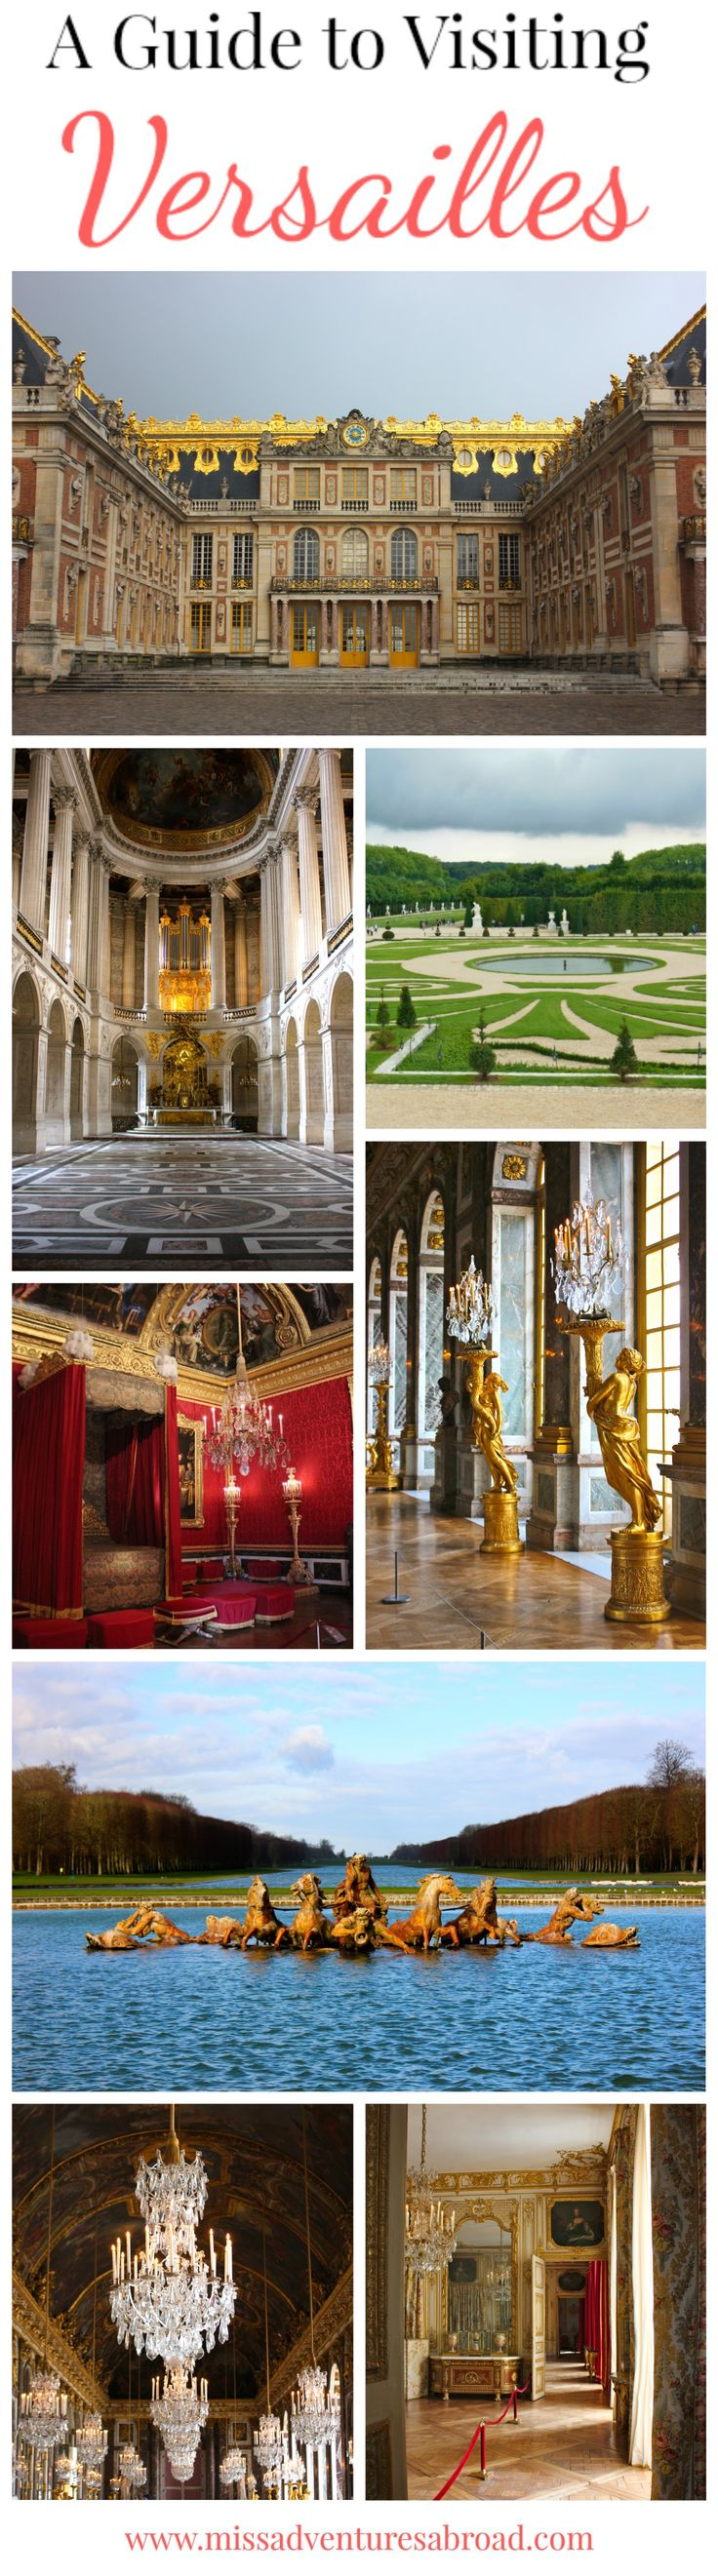 394 best Versailles Travel images on Pinterest